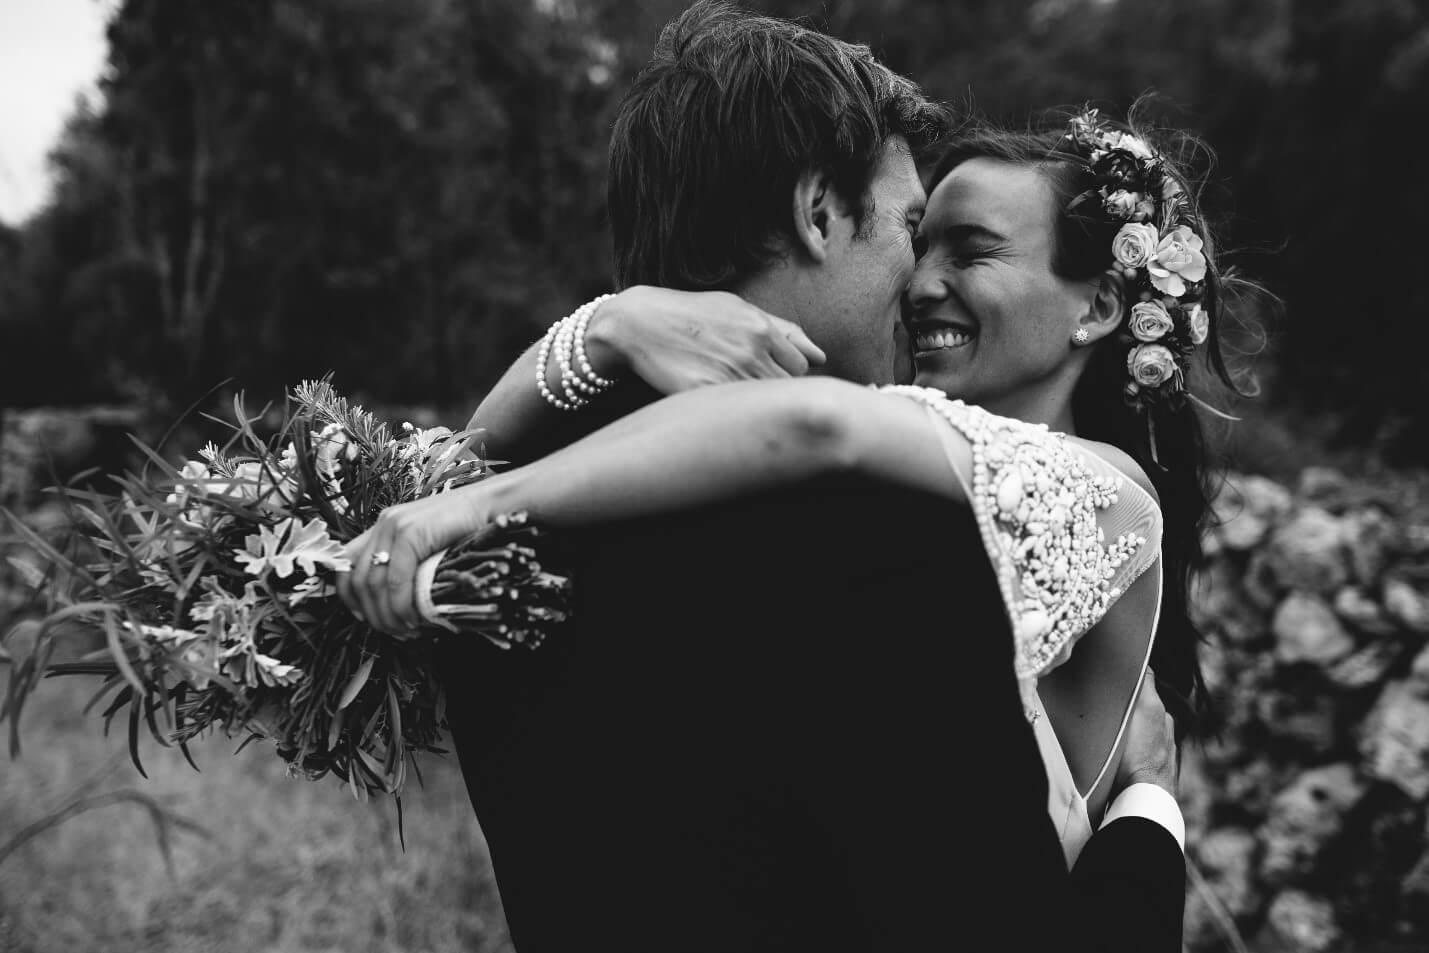 Black and White Couple Embracing